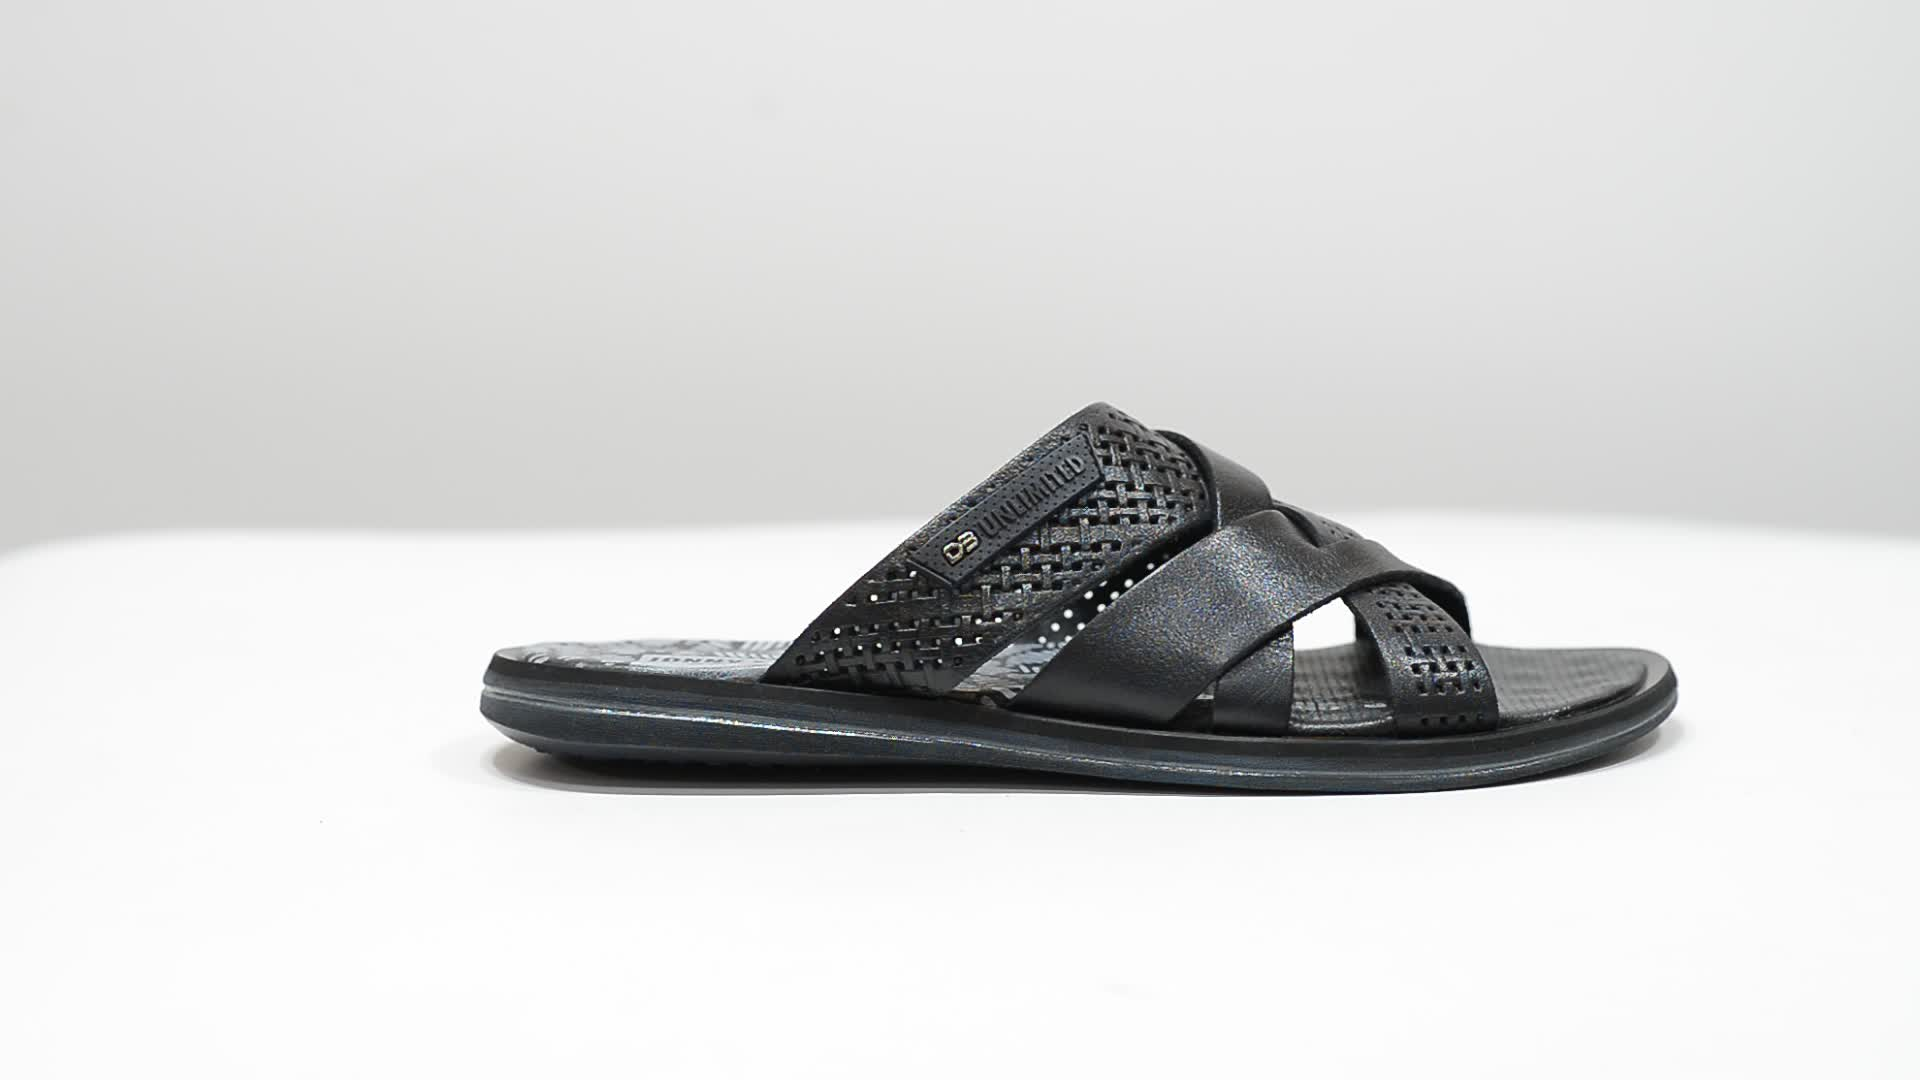 Fashionable Design Men's Sandal, L987 sp